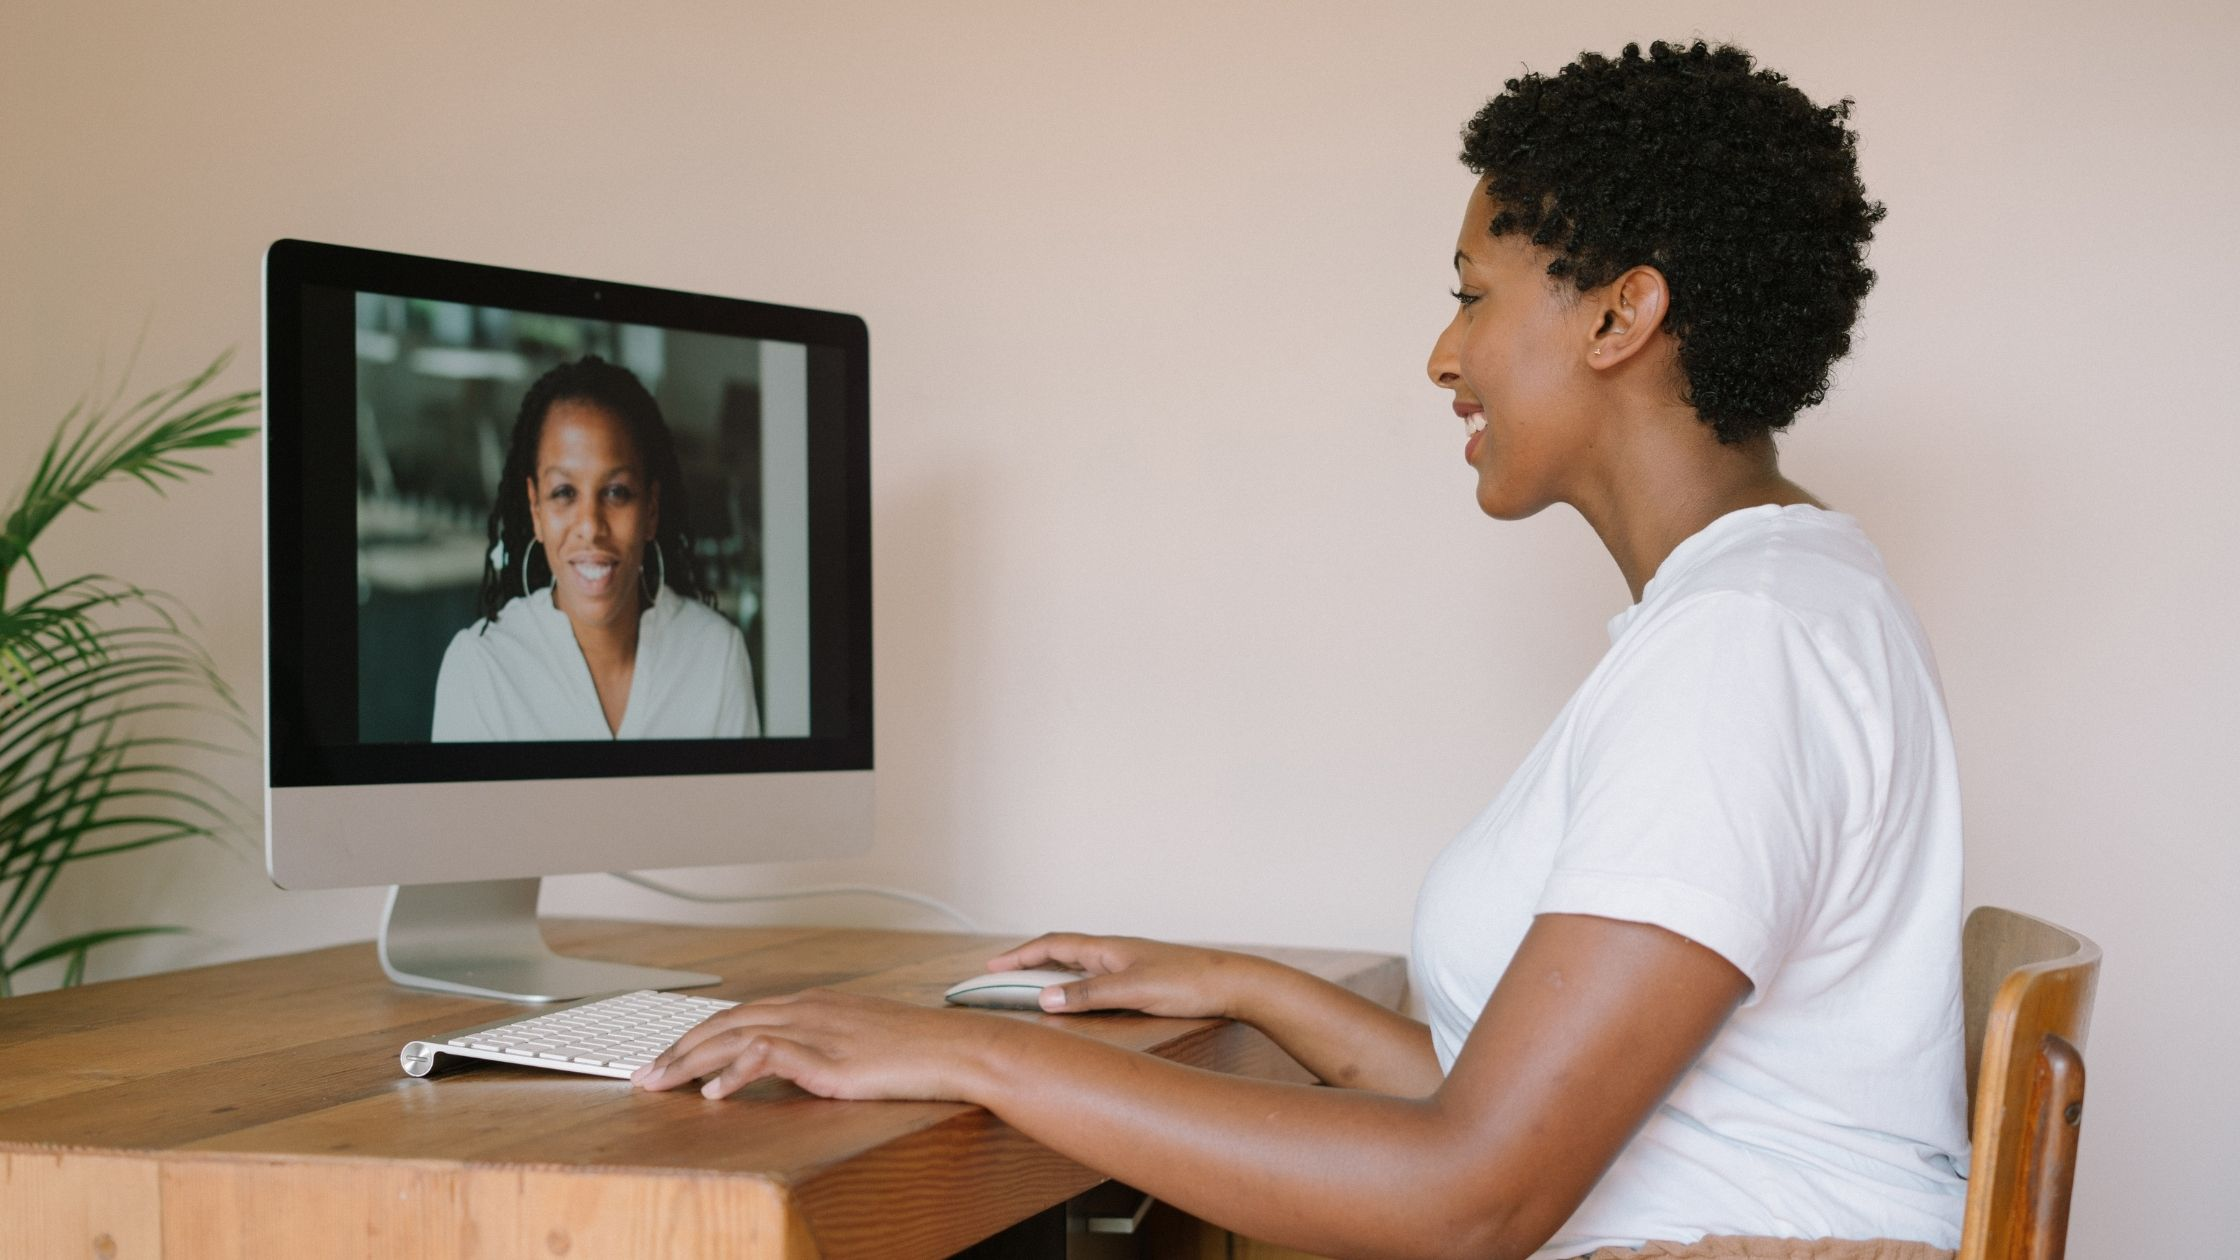 two women are talking on a zoom call on a desktop computer.